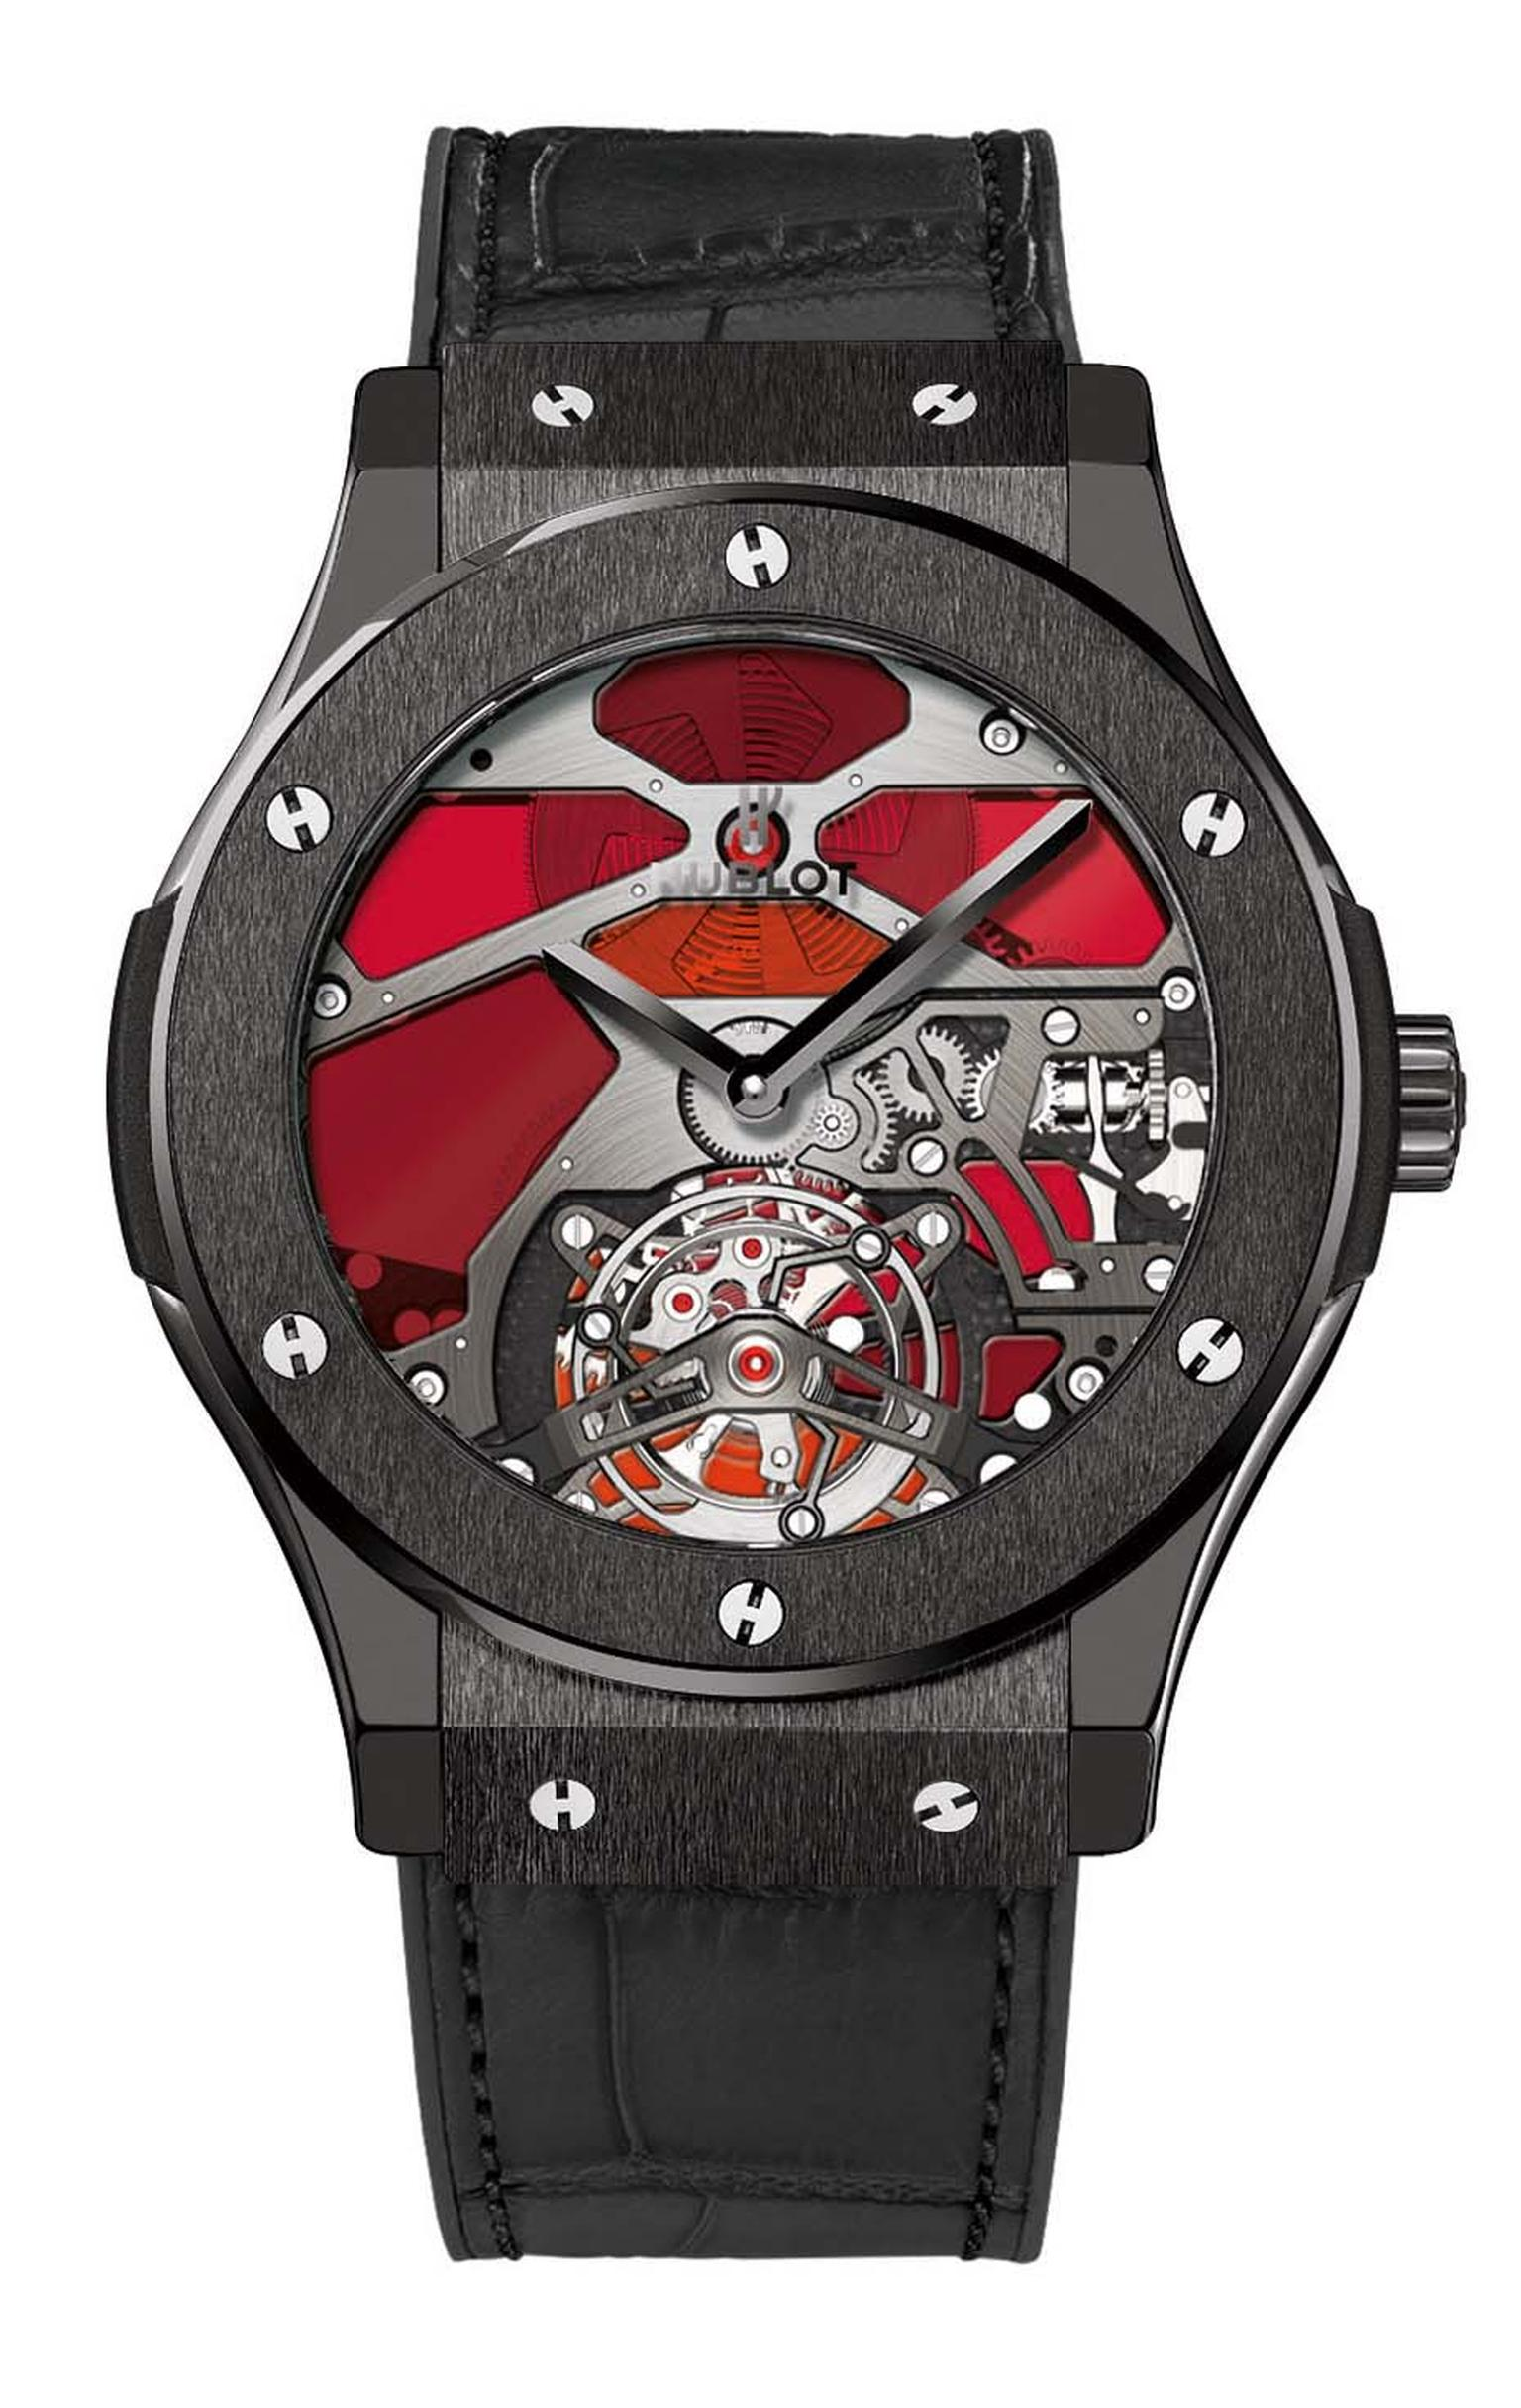 Hublot has inserted slivers of red and blue stained glass to decorate the dial of the Classic Fusion Tourbillon Vitrail watch